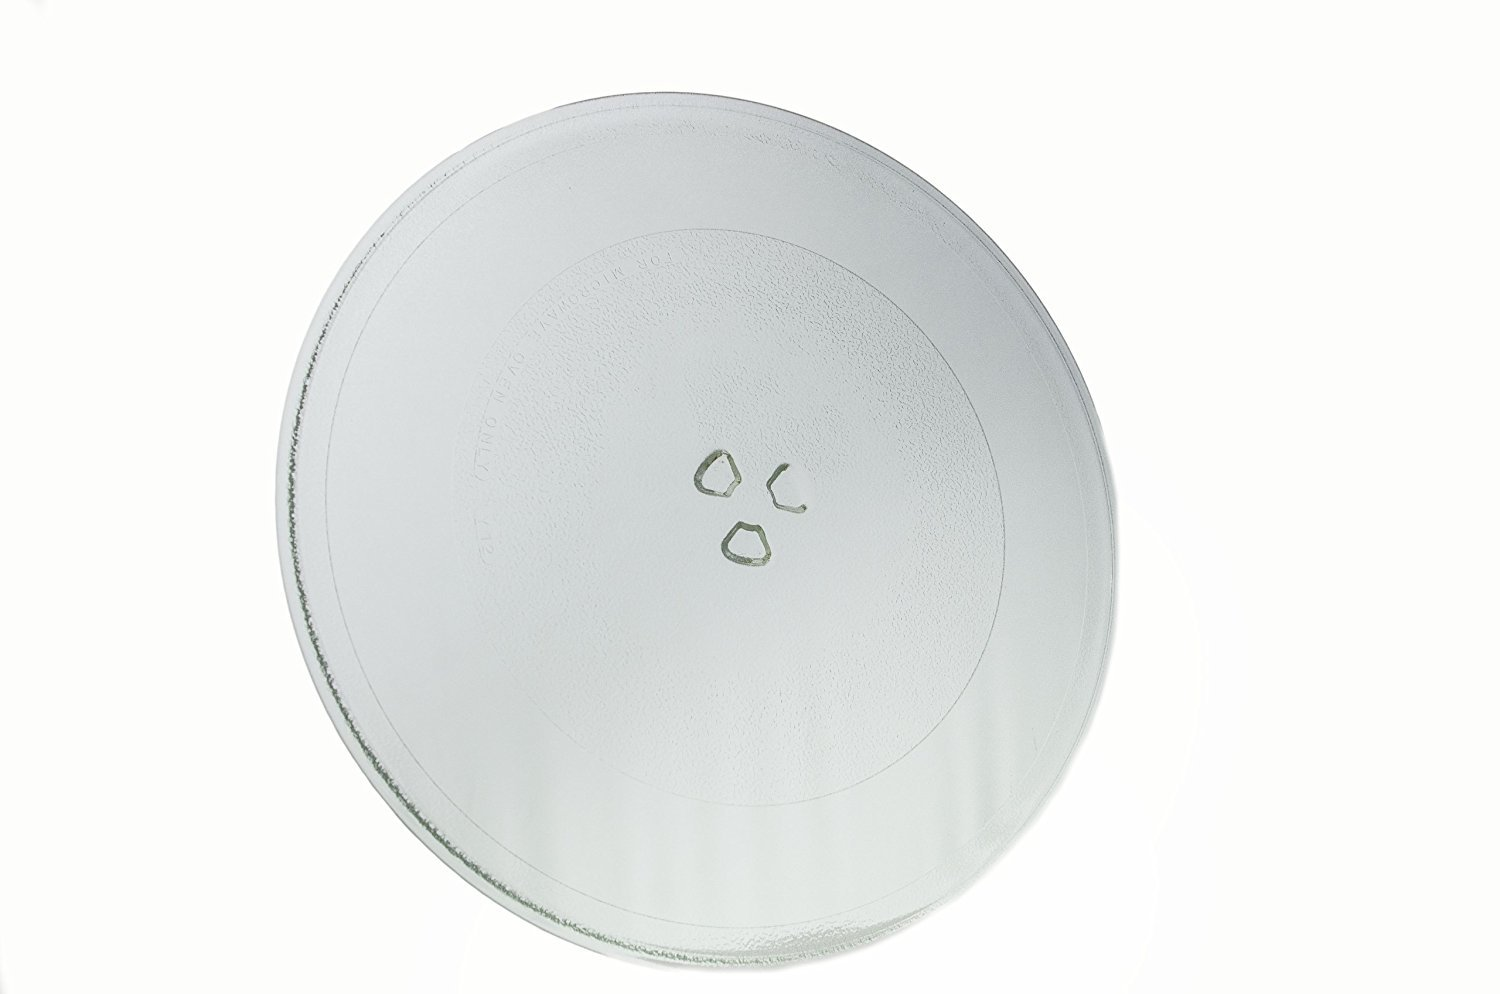 Enterpark Only Factory OEM Replacement Part MJS47373301 Glass Turntable Tray for LG Microwave Oven OEM product